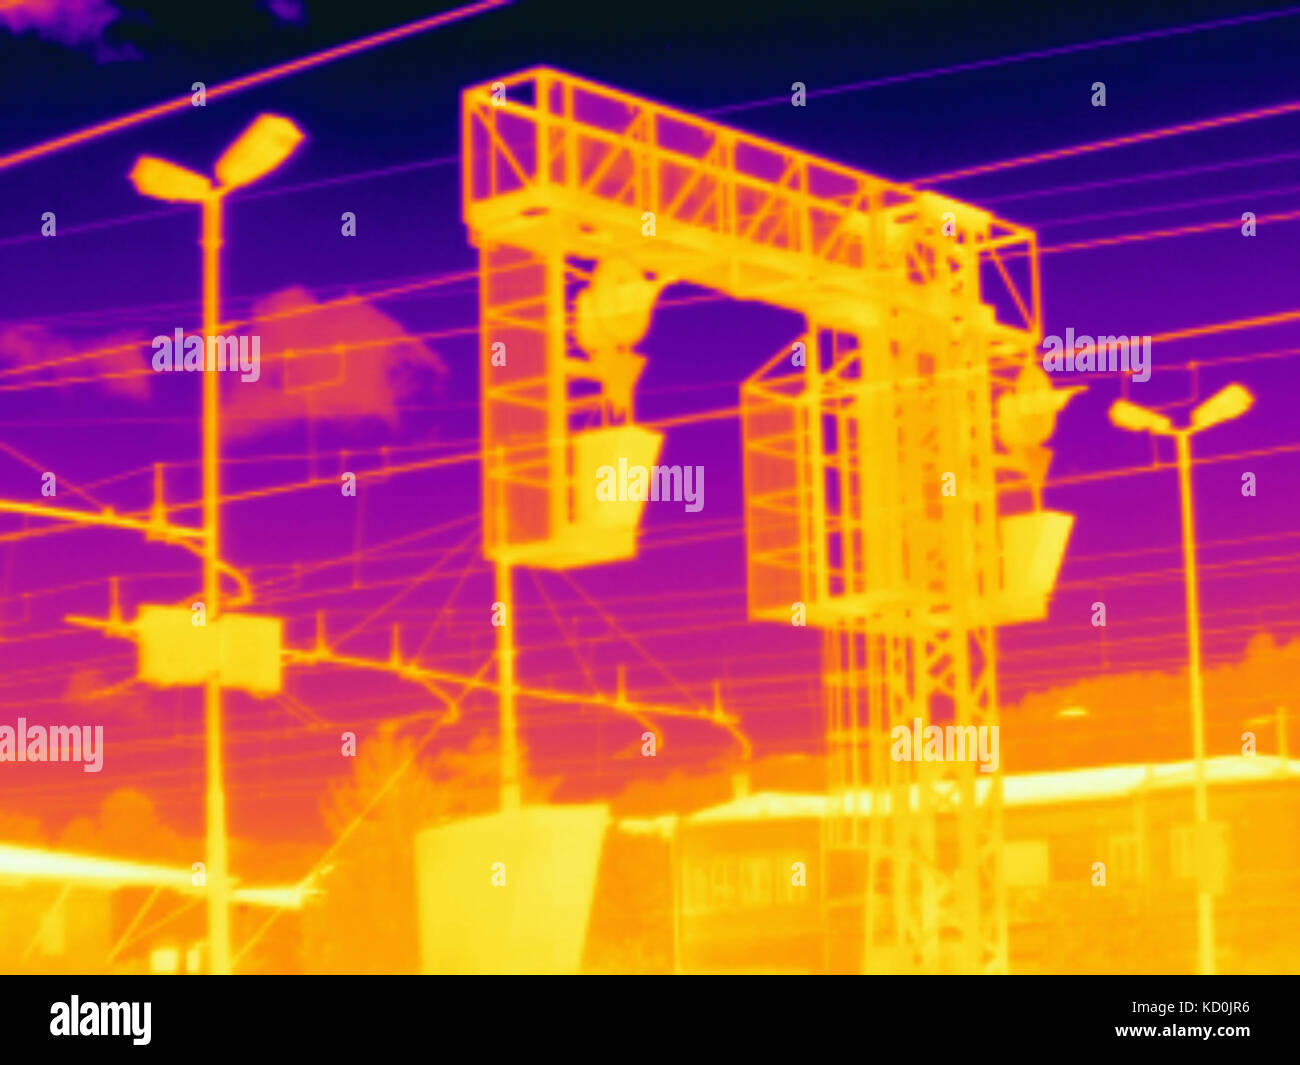 Thermal image of overhead cables at train station - Stock Image